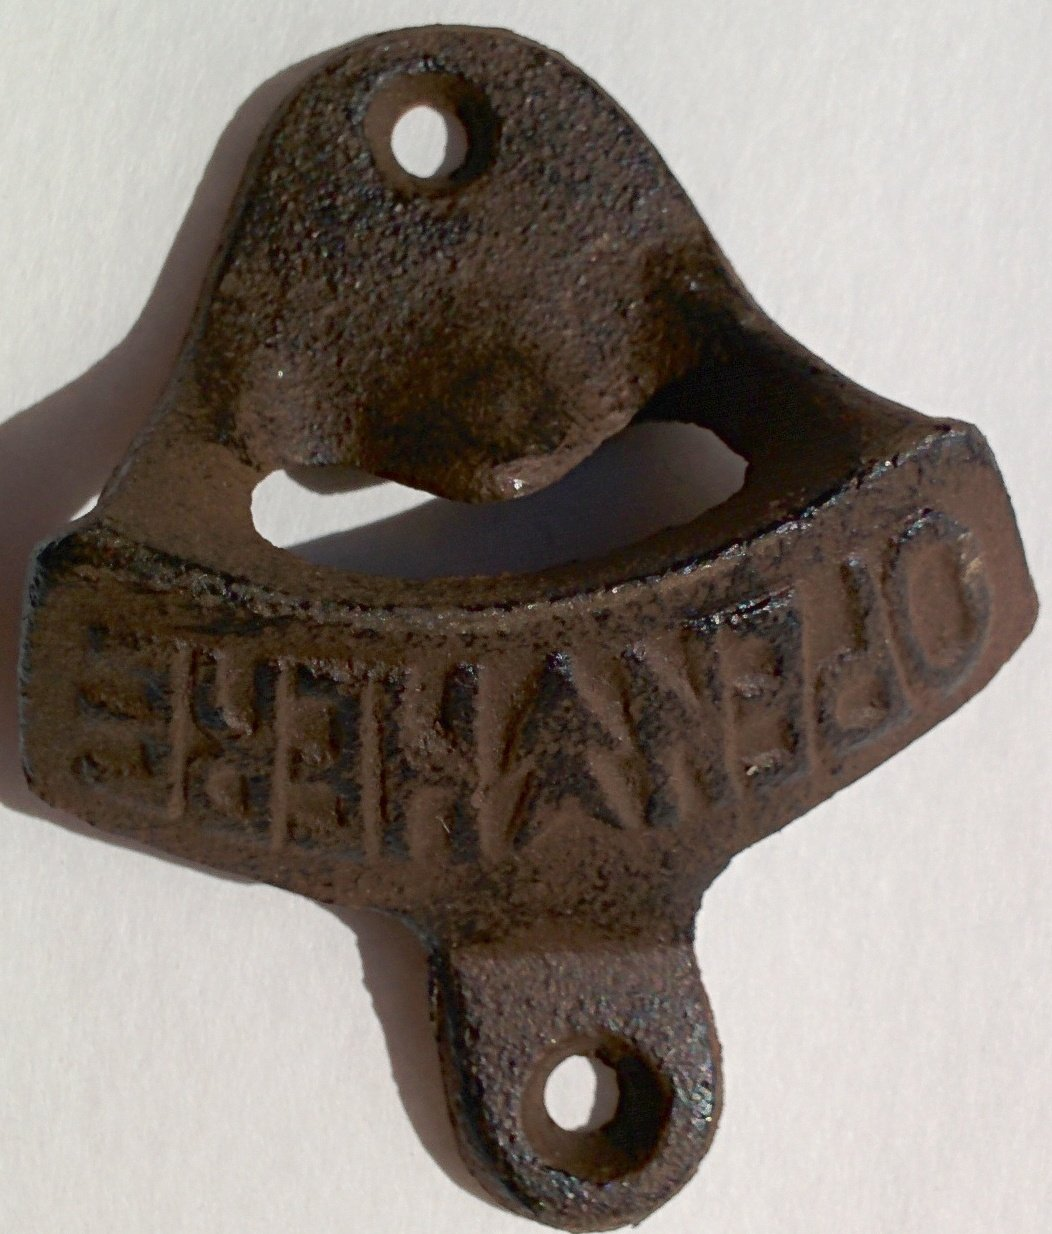 Lot of 50 Open Here Bottle Openers Rustic Cast Iron Wall Mount Vintage Style Beer Bottle Opener for the Man Cave Wholesale Bulk Lot by Always A Bargain 4U (Image #7)